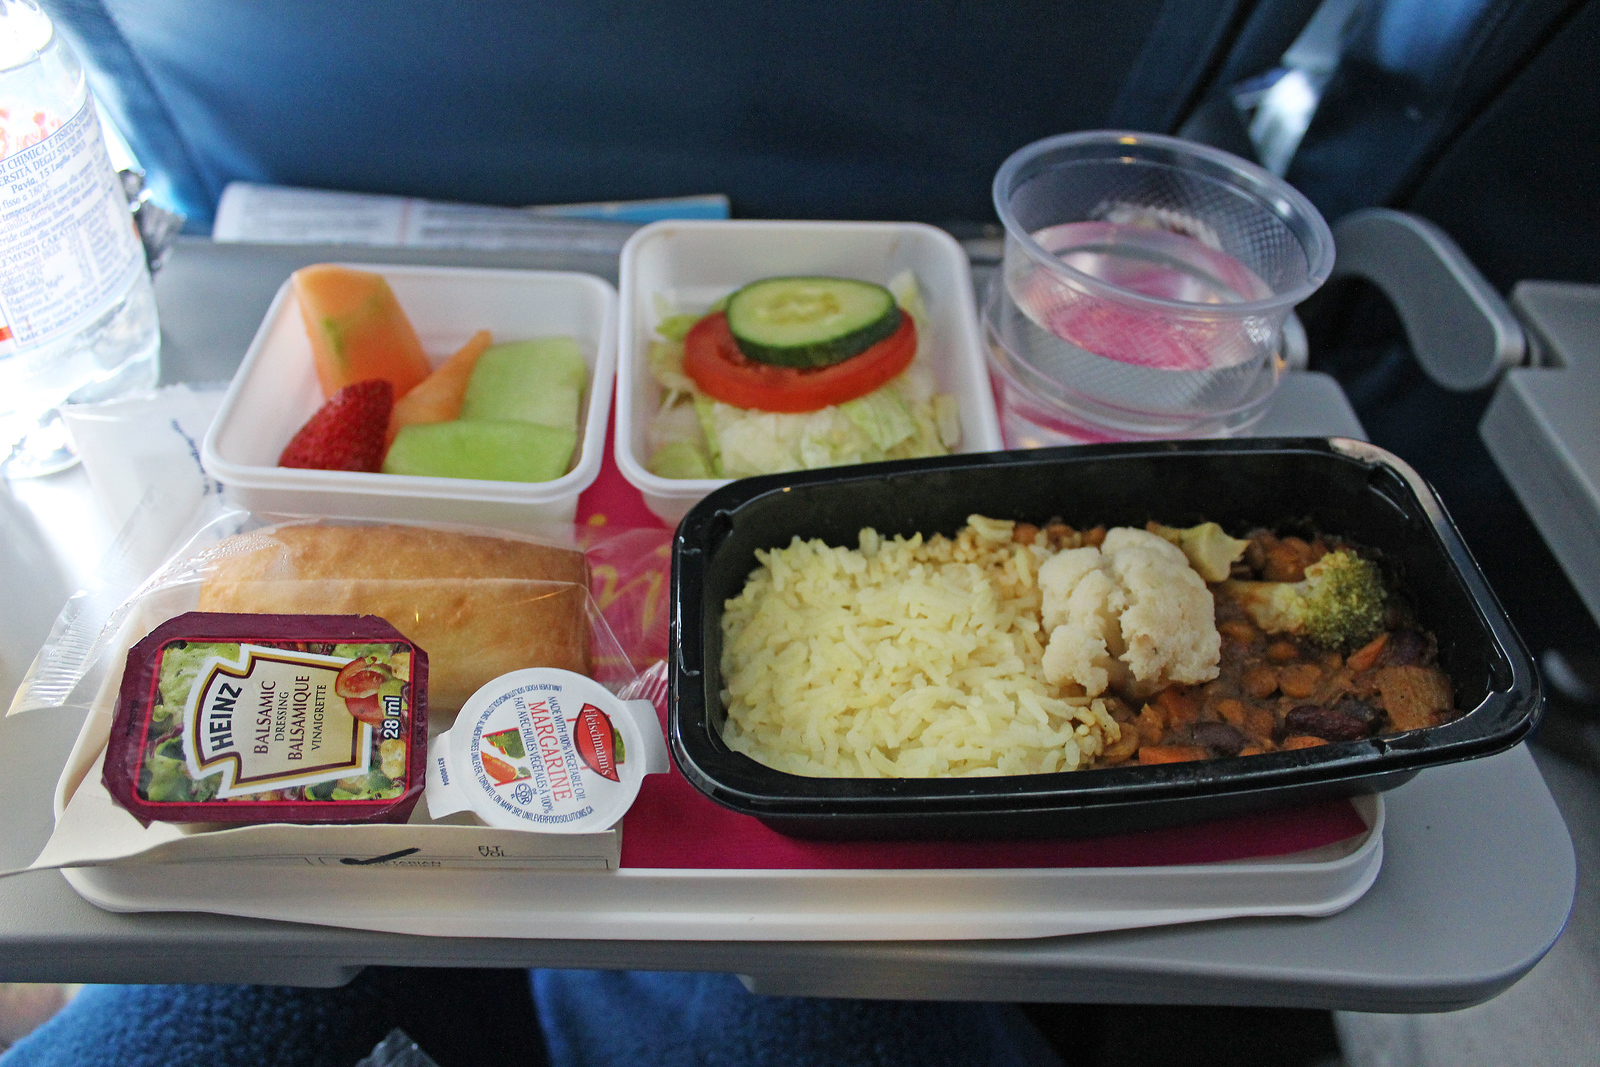 Review of Air Transat with Vegan Meals